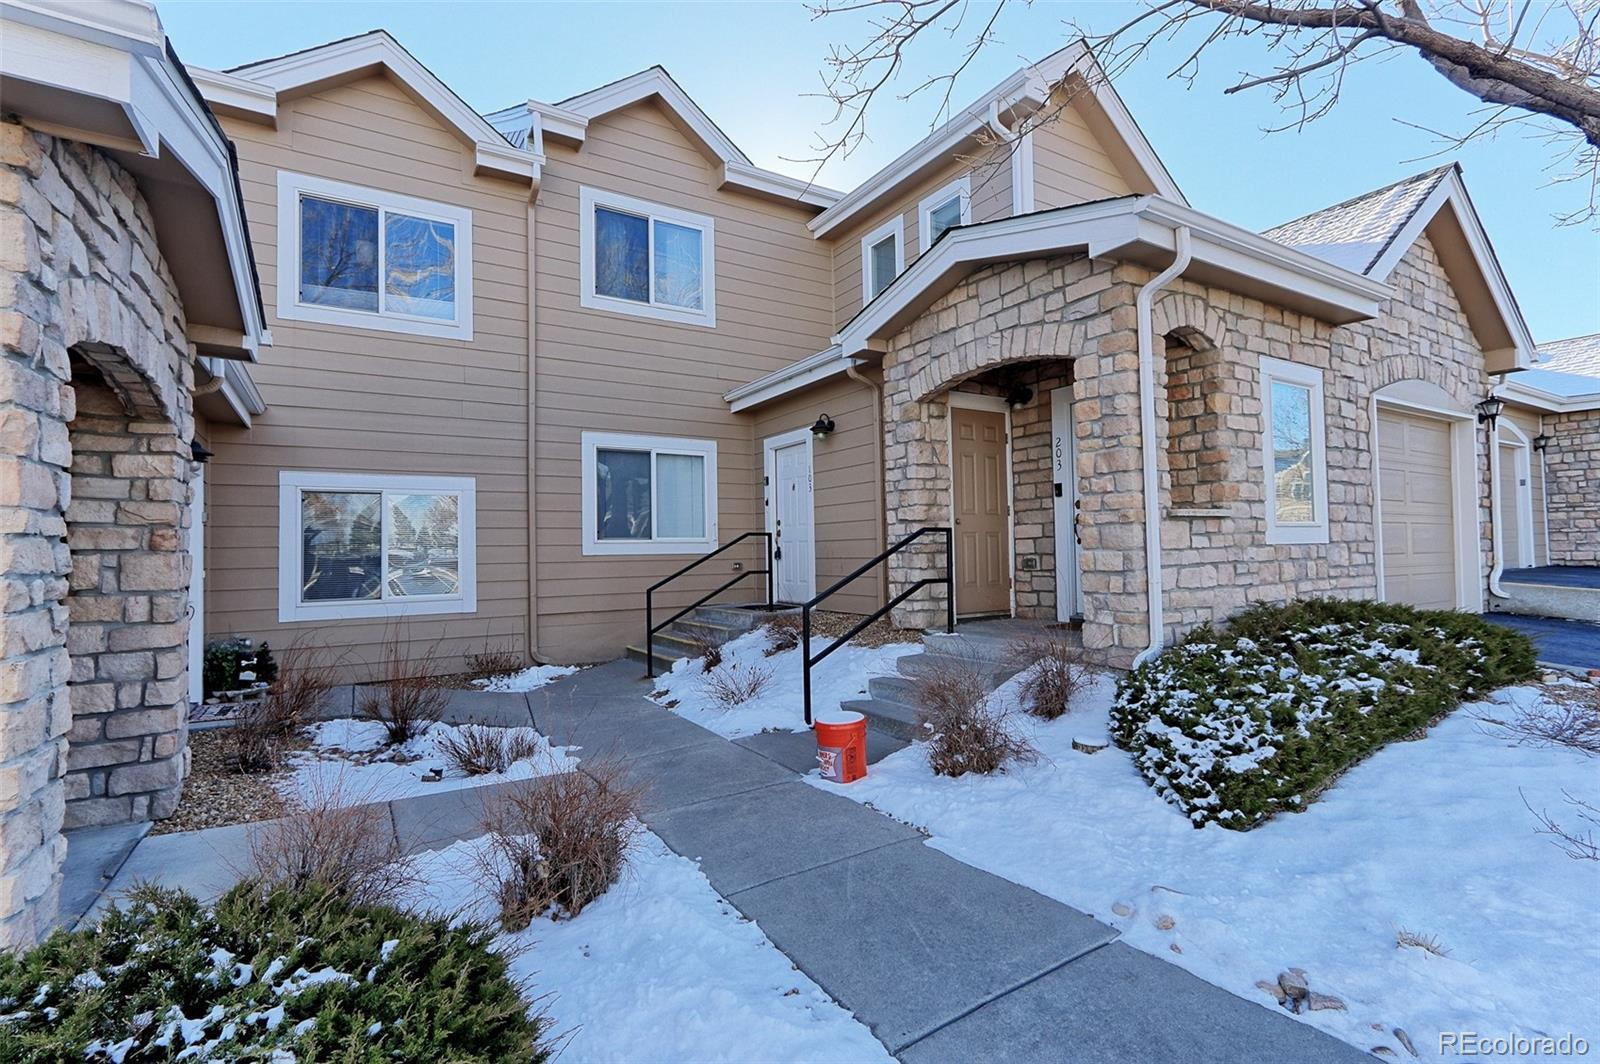 2883 W 119th Avenue #103, Westminster, CO 80234 - #: 4204653